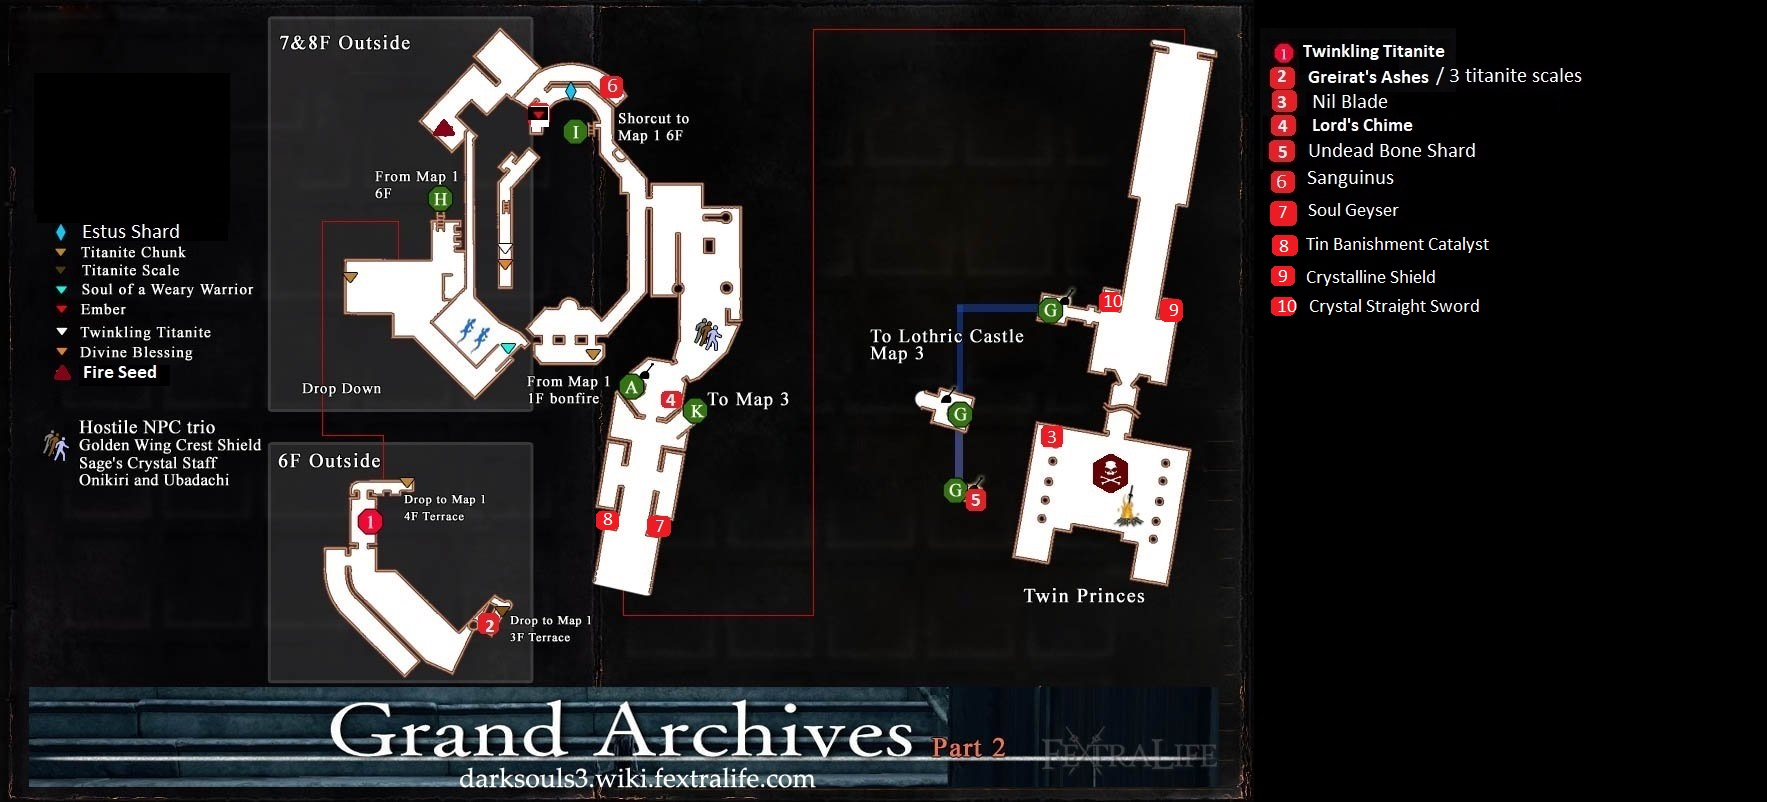 grand_archives_map2.jpg